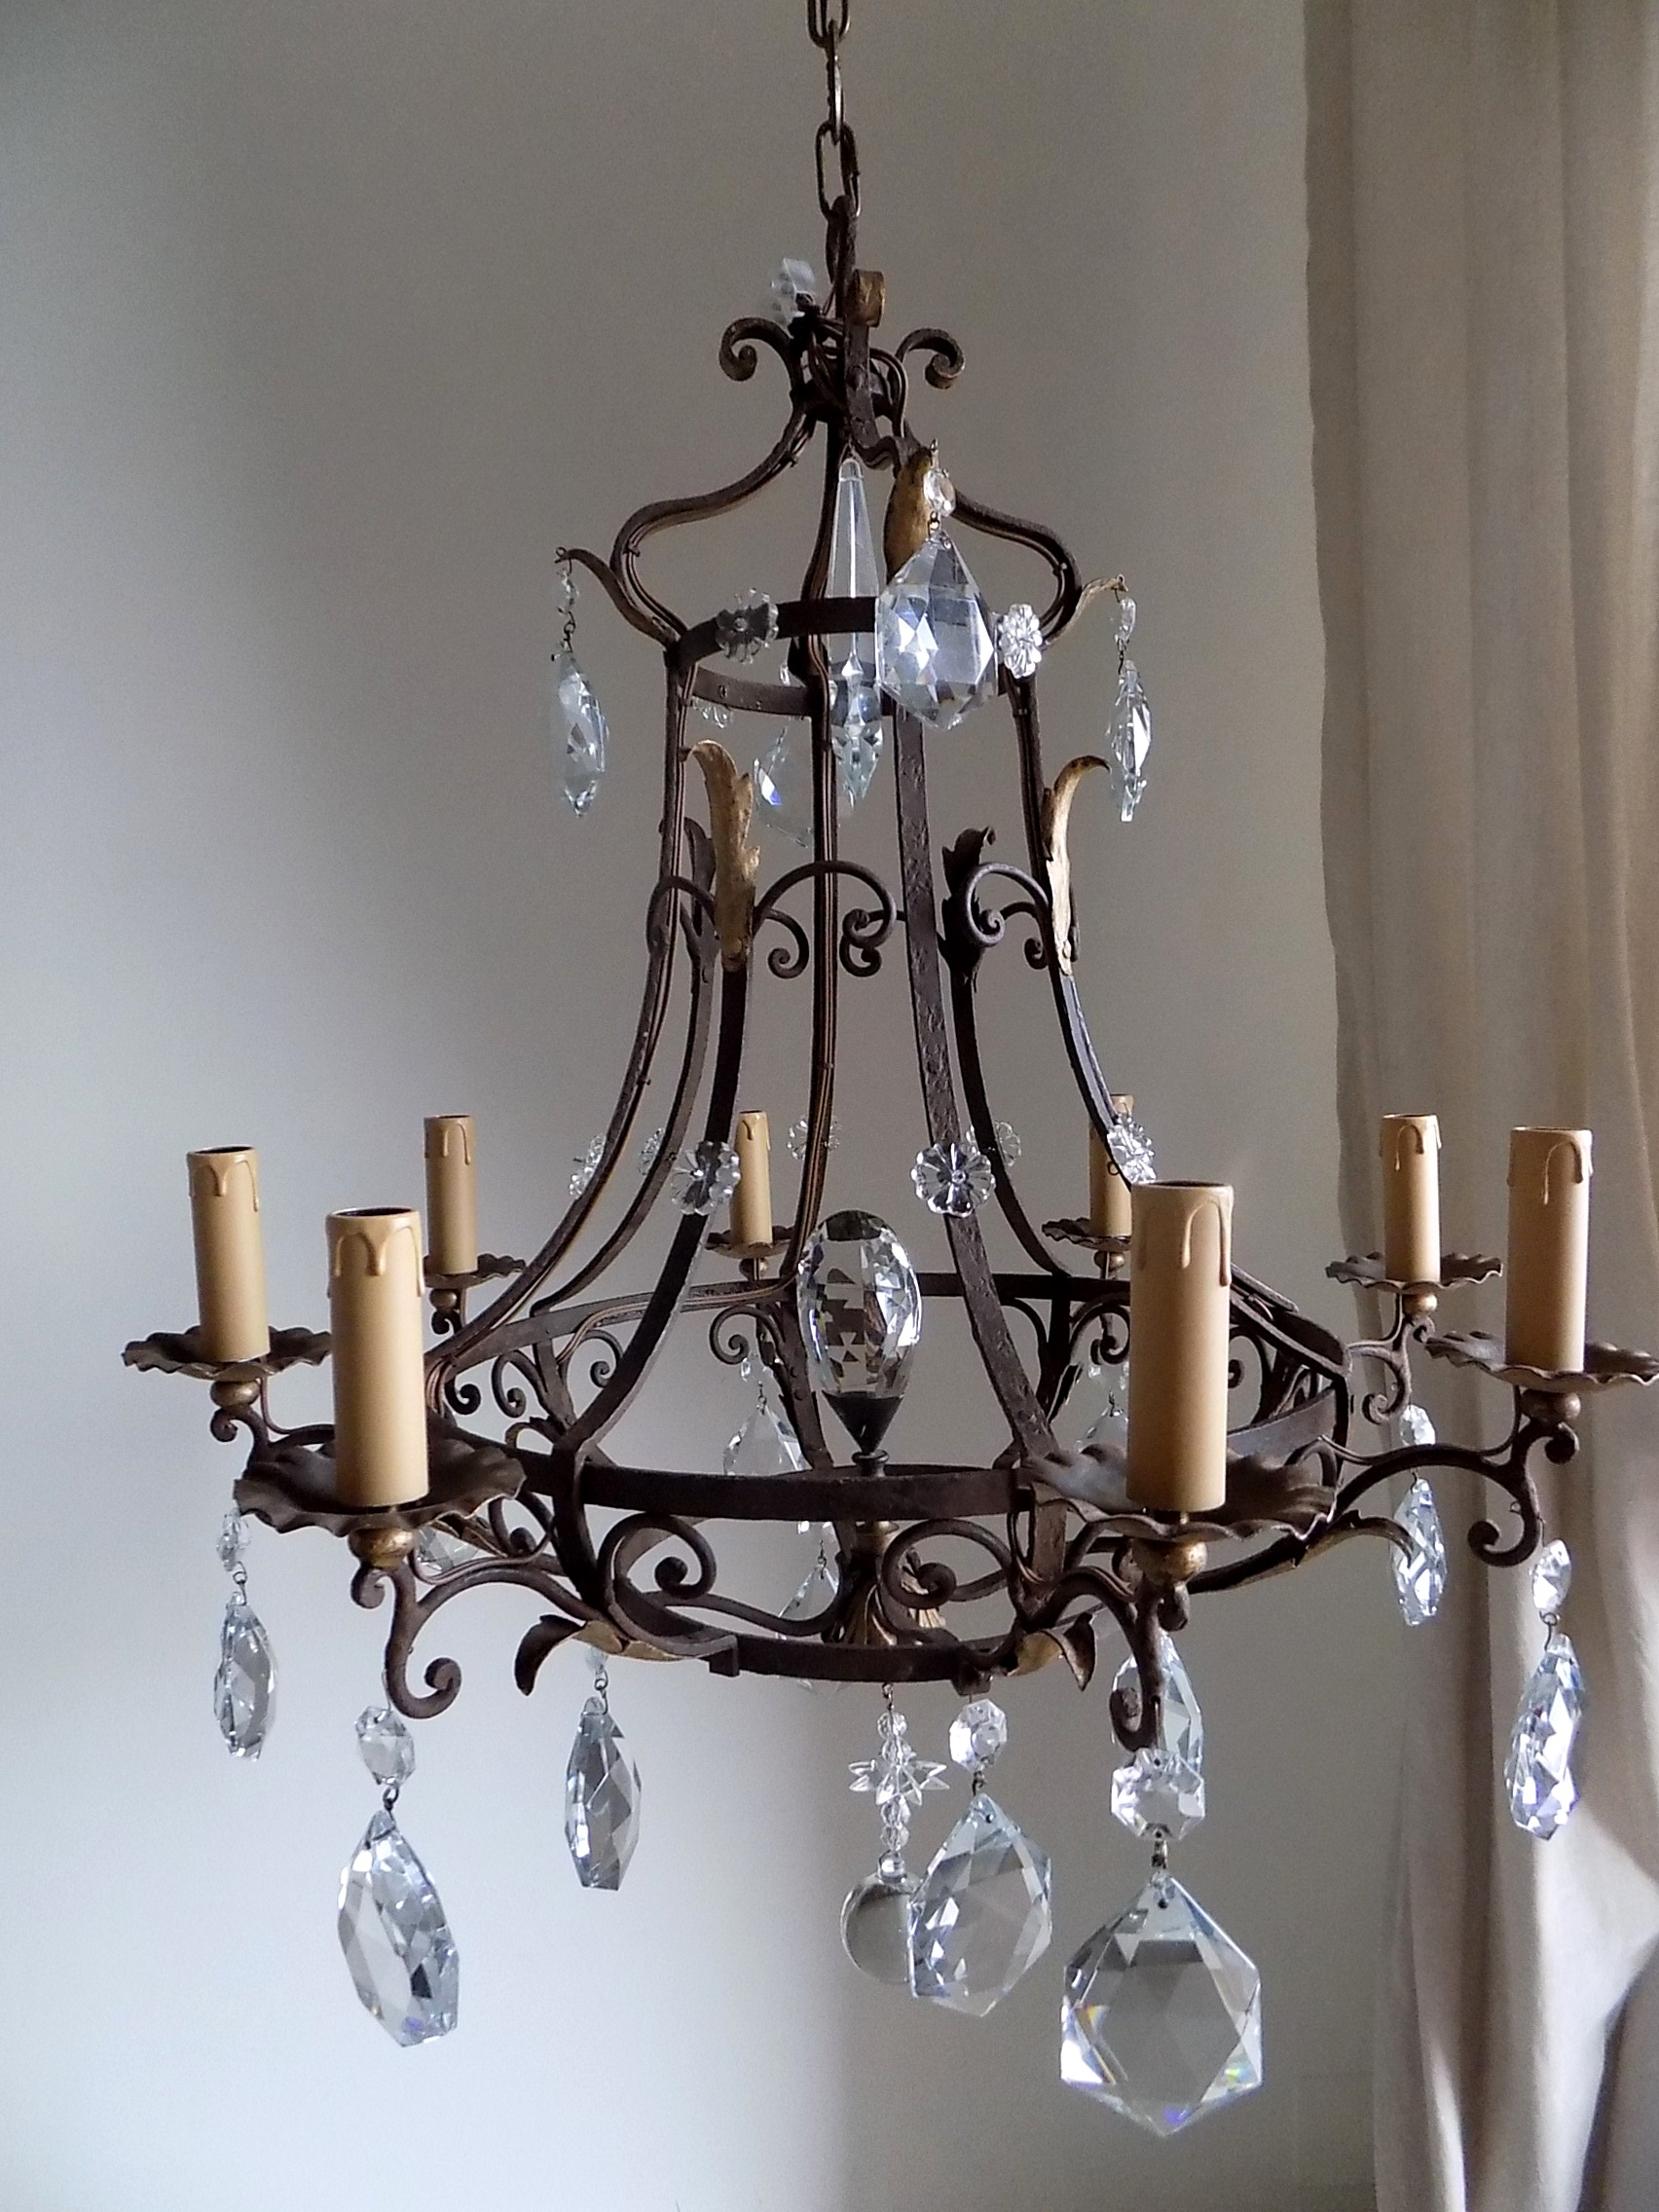 Wrought Iron Rectangular Chandelier Antique French Massive Hand Forged Wrought Iron Chandelier